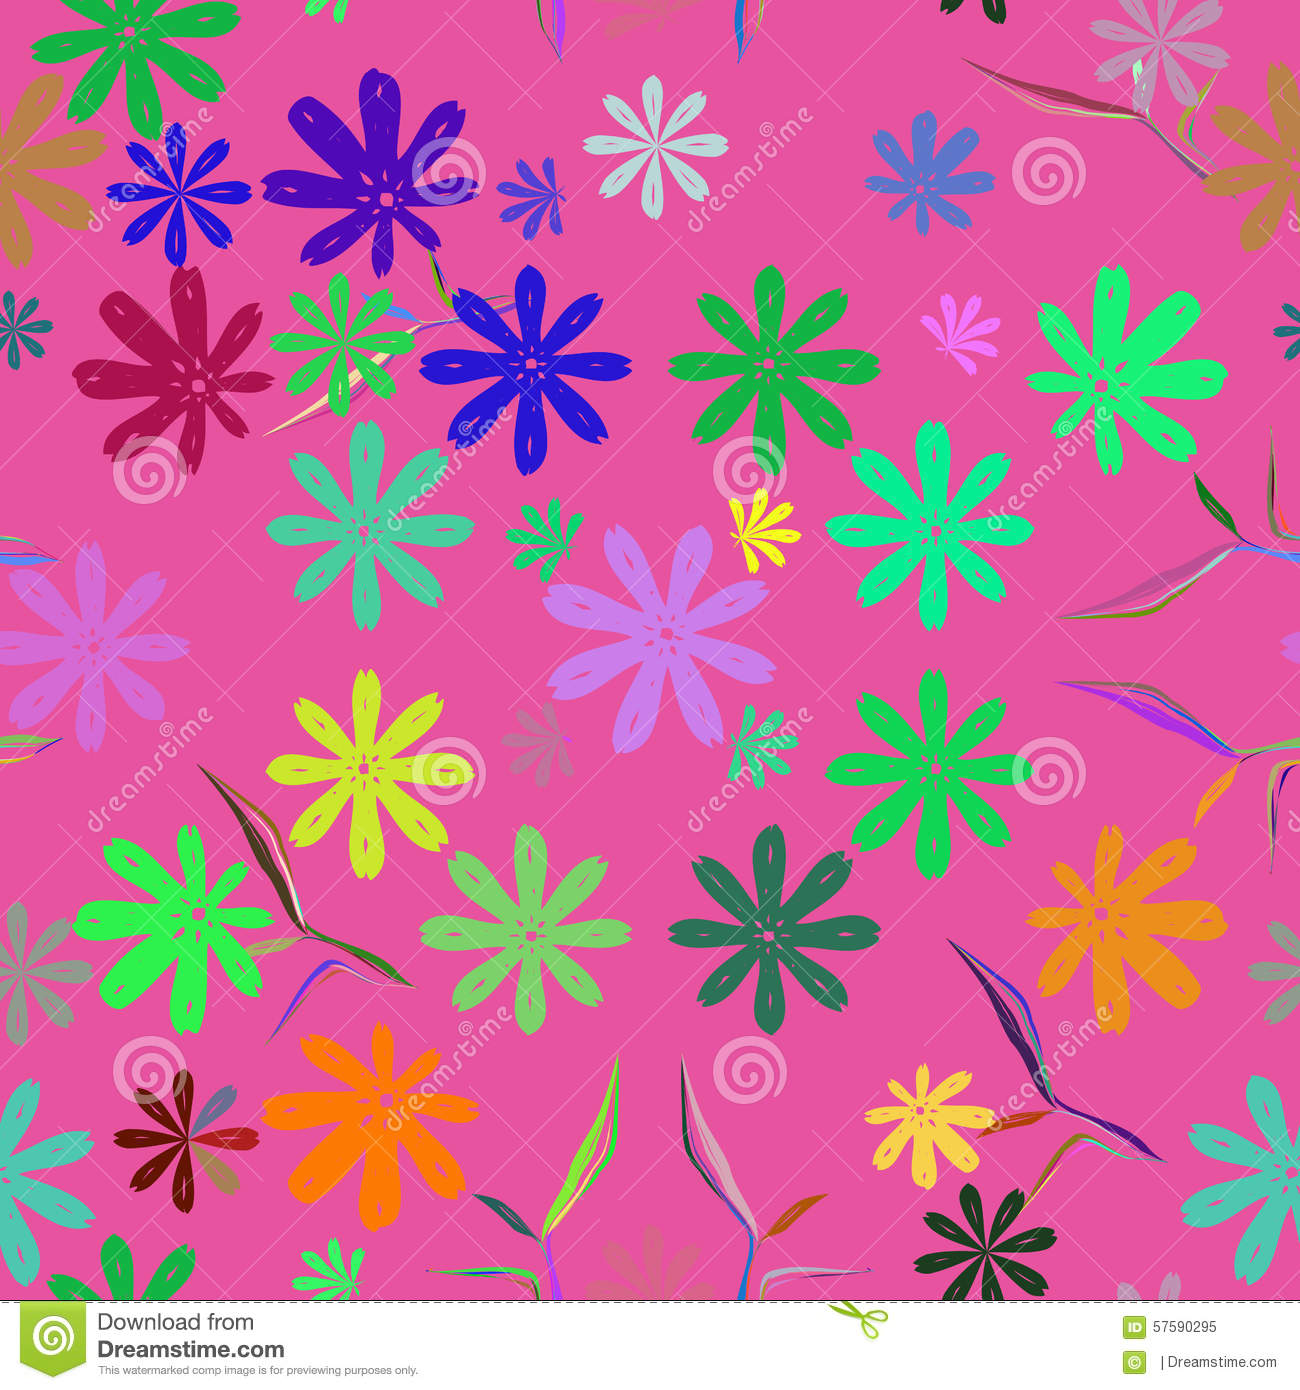 Cute Cartoon With Flowers Nature Seamless Pattern. Stock Vector ...